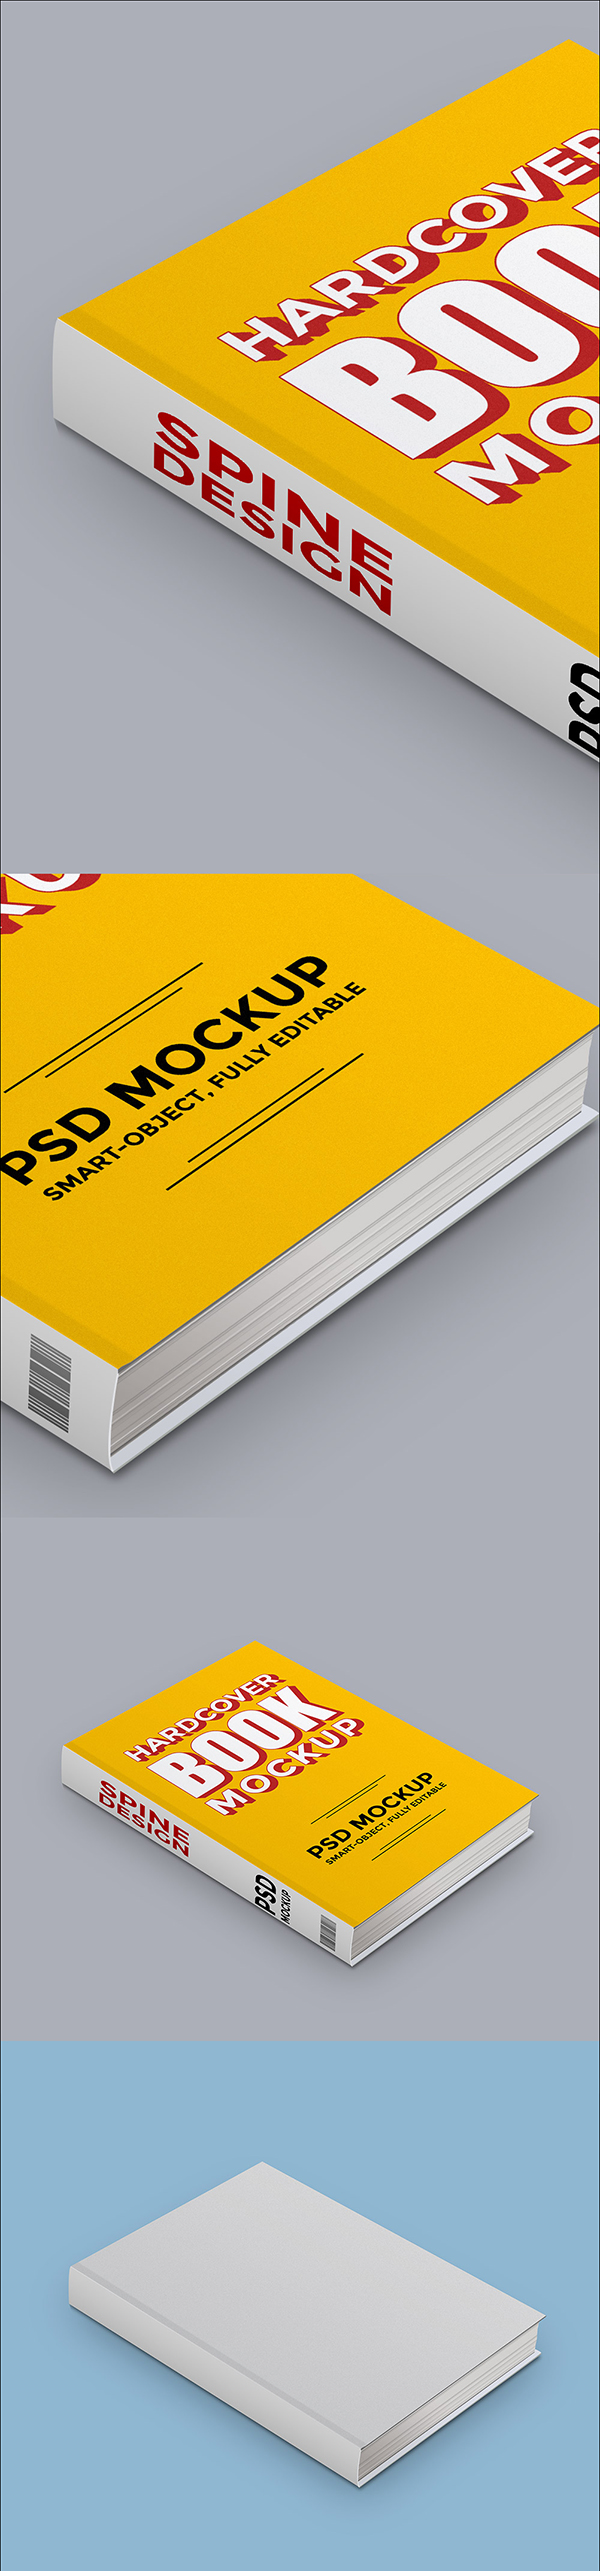 05 Hardcover Book PSD Mockup